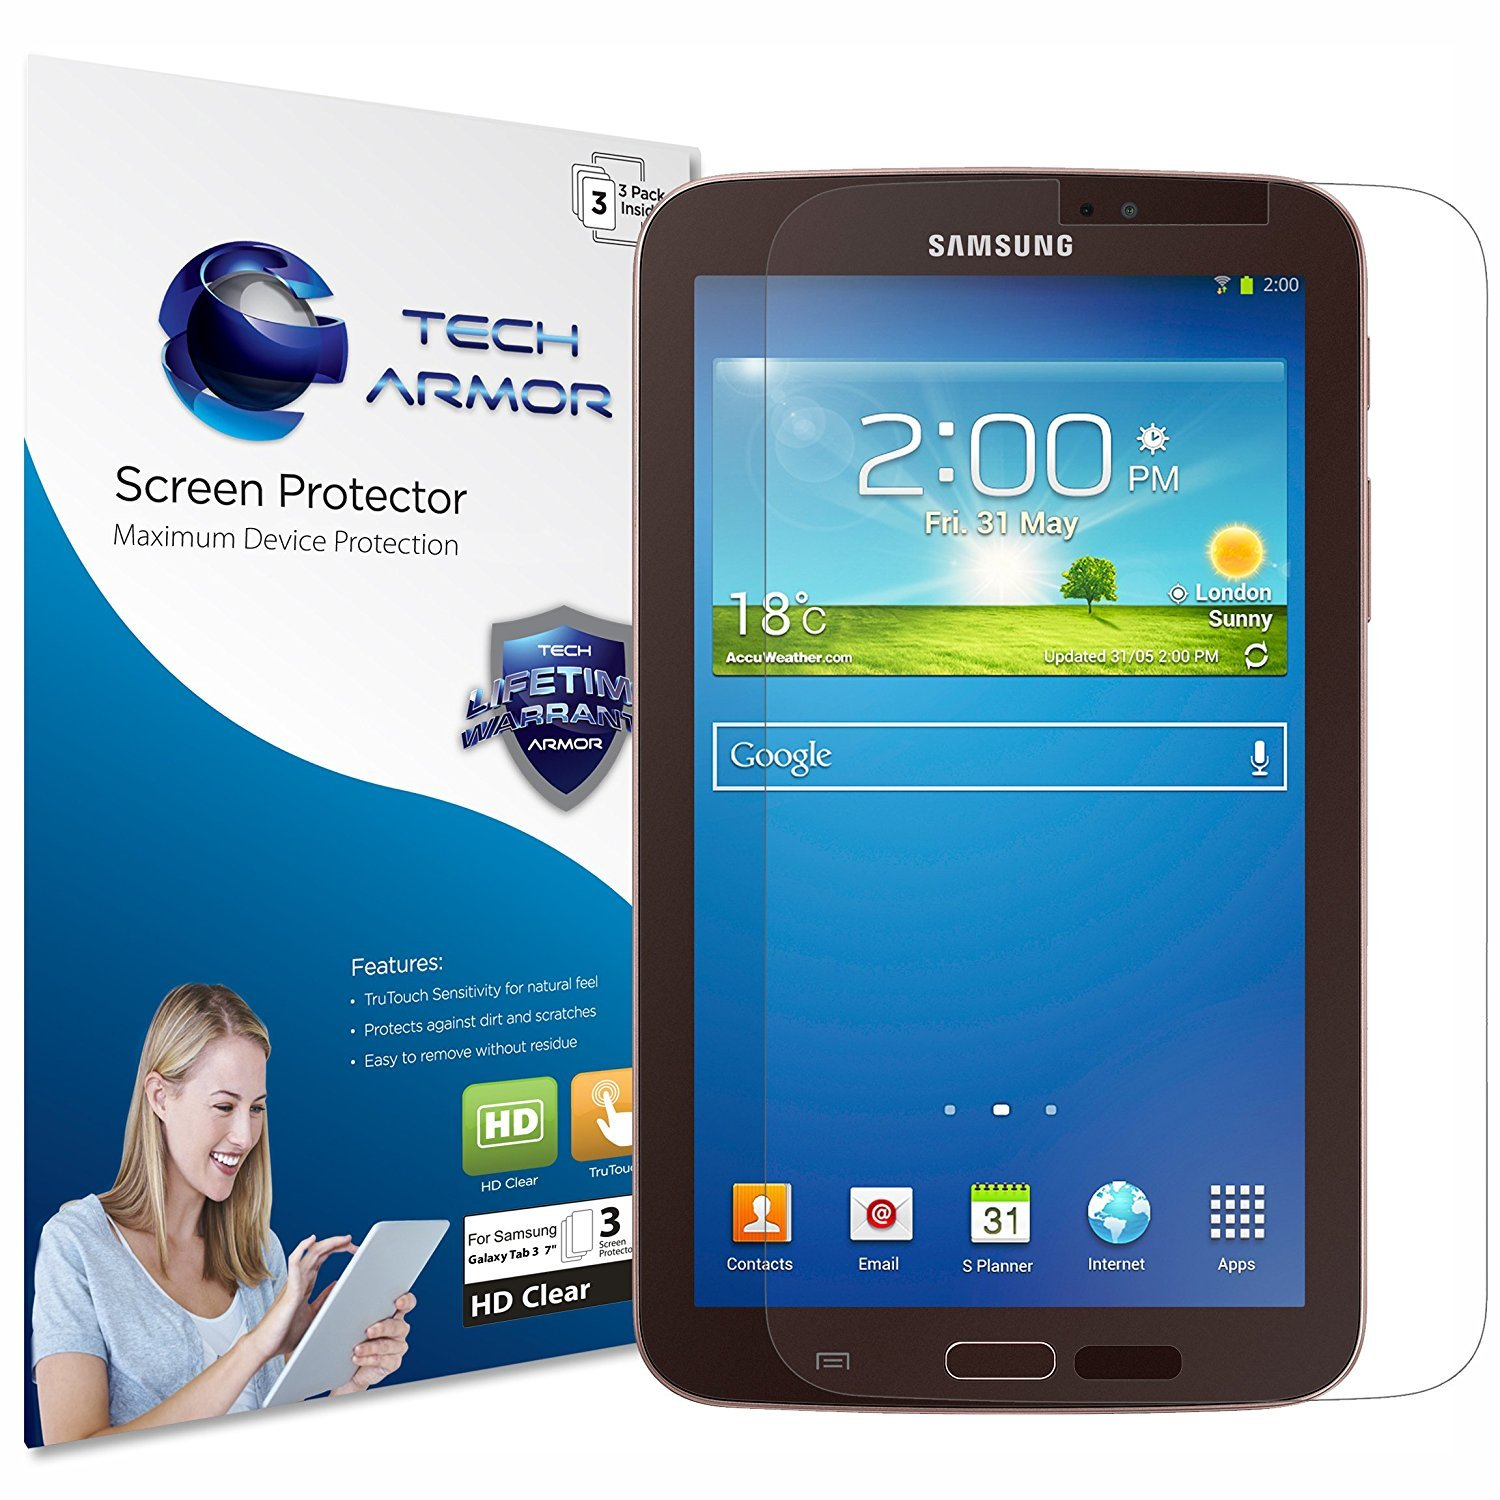 Tech Armor Galaxy Tab 3 Screen Protector, Anti-Glare/Anti-Fingerprint Sasmsung Galaxy Tab 3-7 Film Screen Protector [3-Pack]